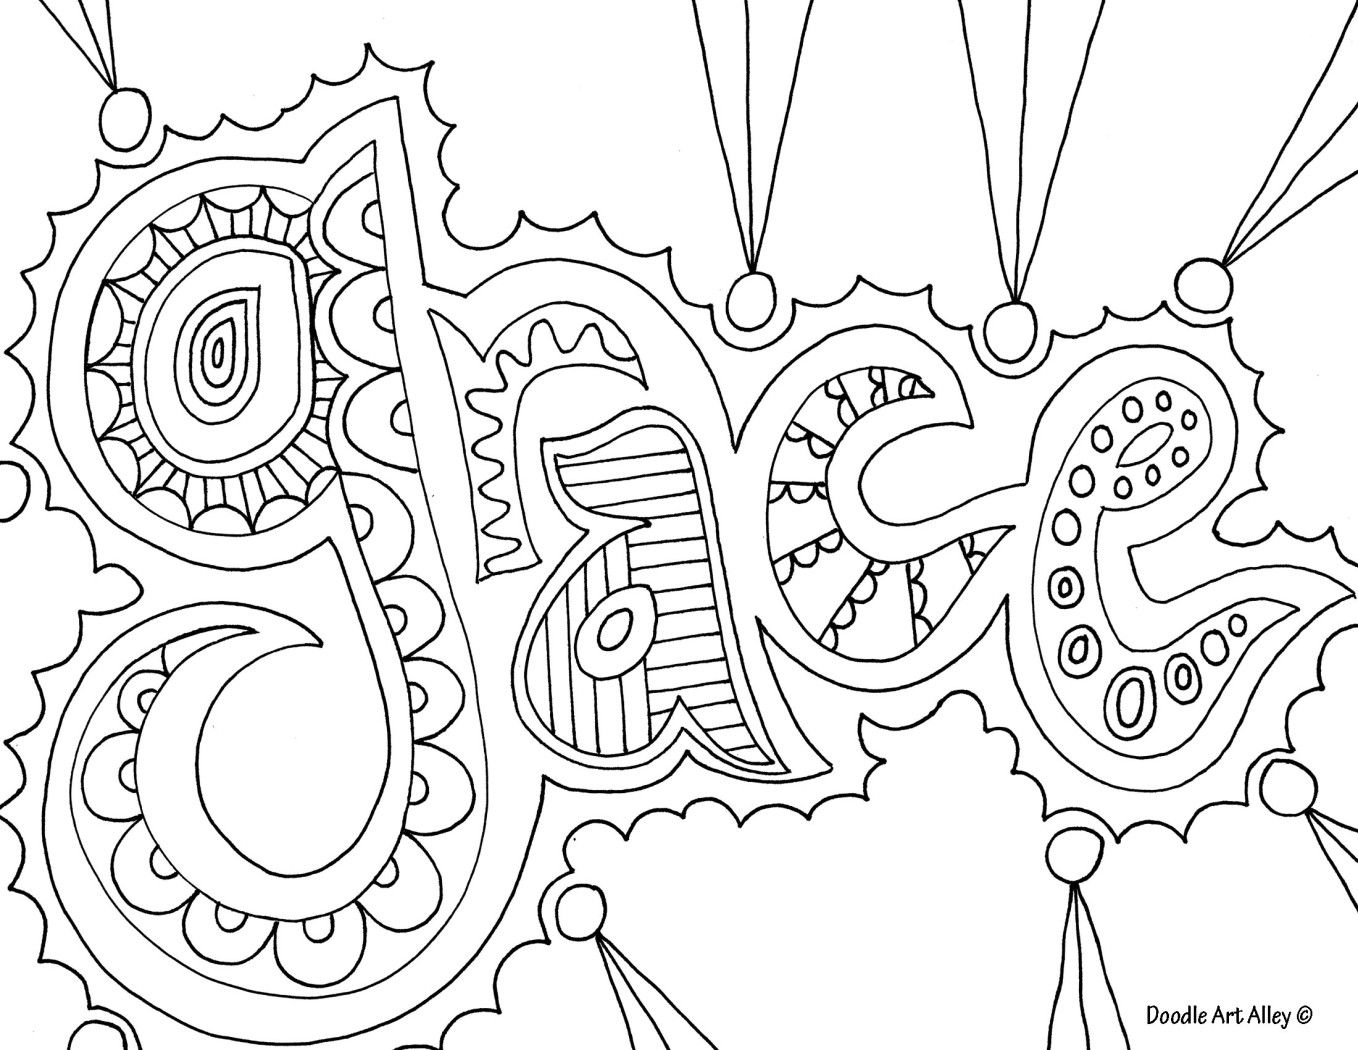 Doodle art grace nice coloring page for older kids for Names coloring pages